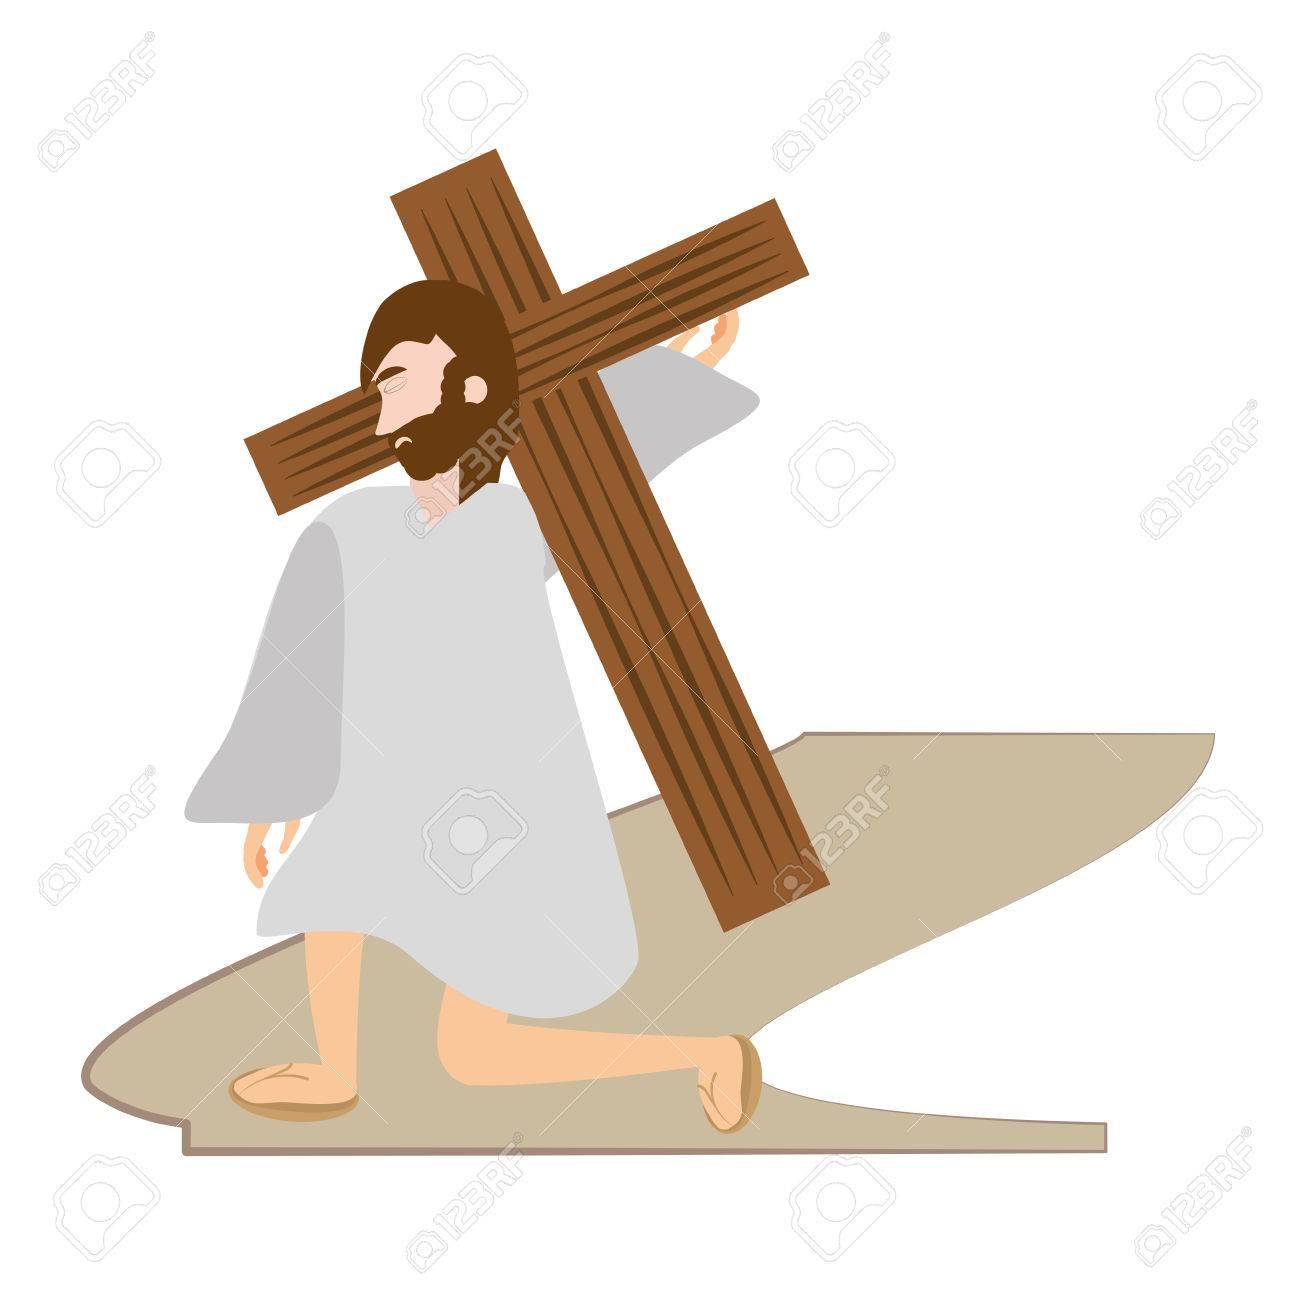 hight resolution of jesus christ falls first time via crucis station vector illustration eps 10 stock vector